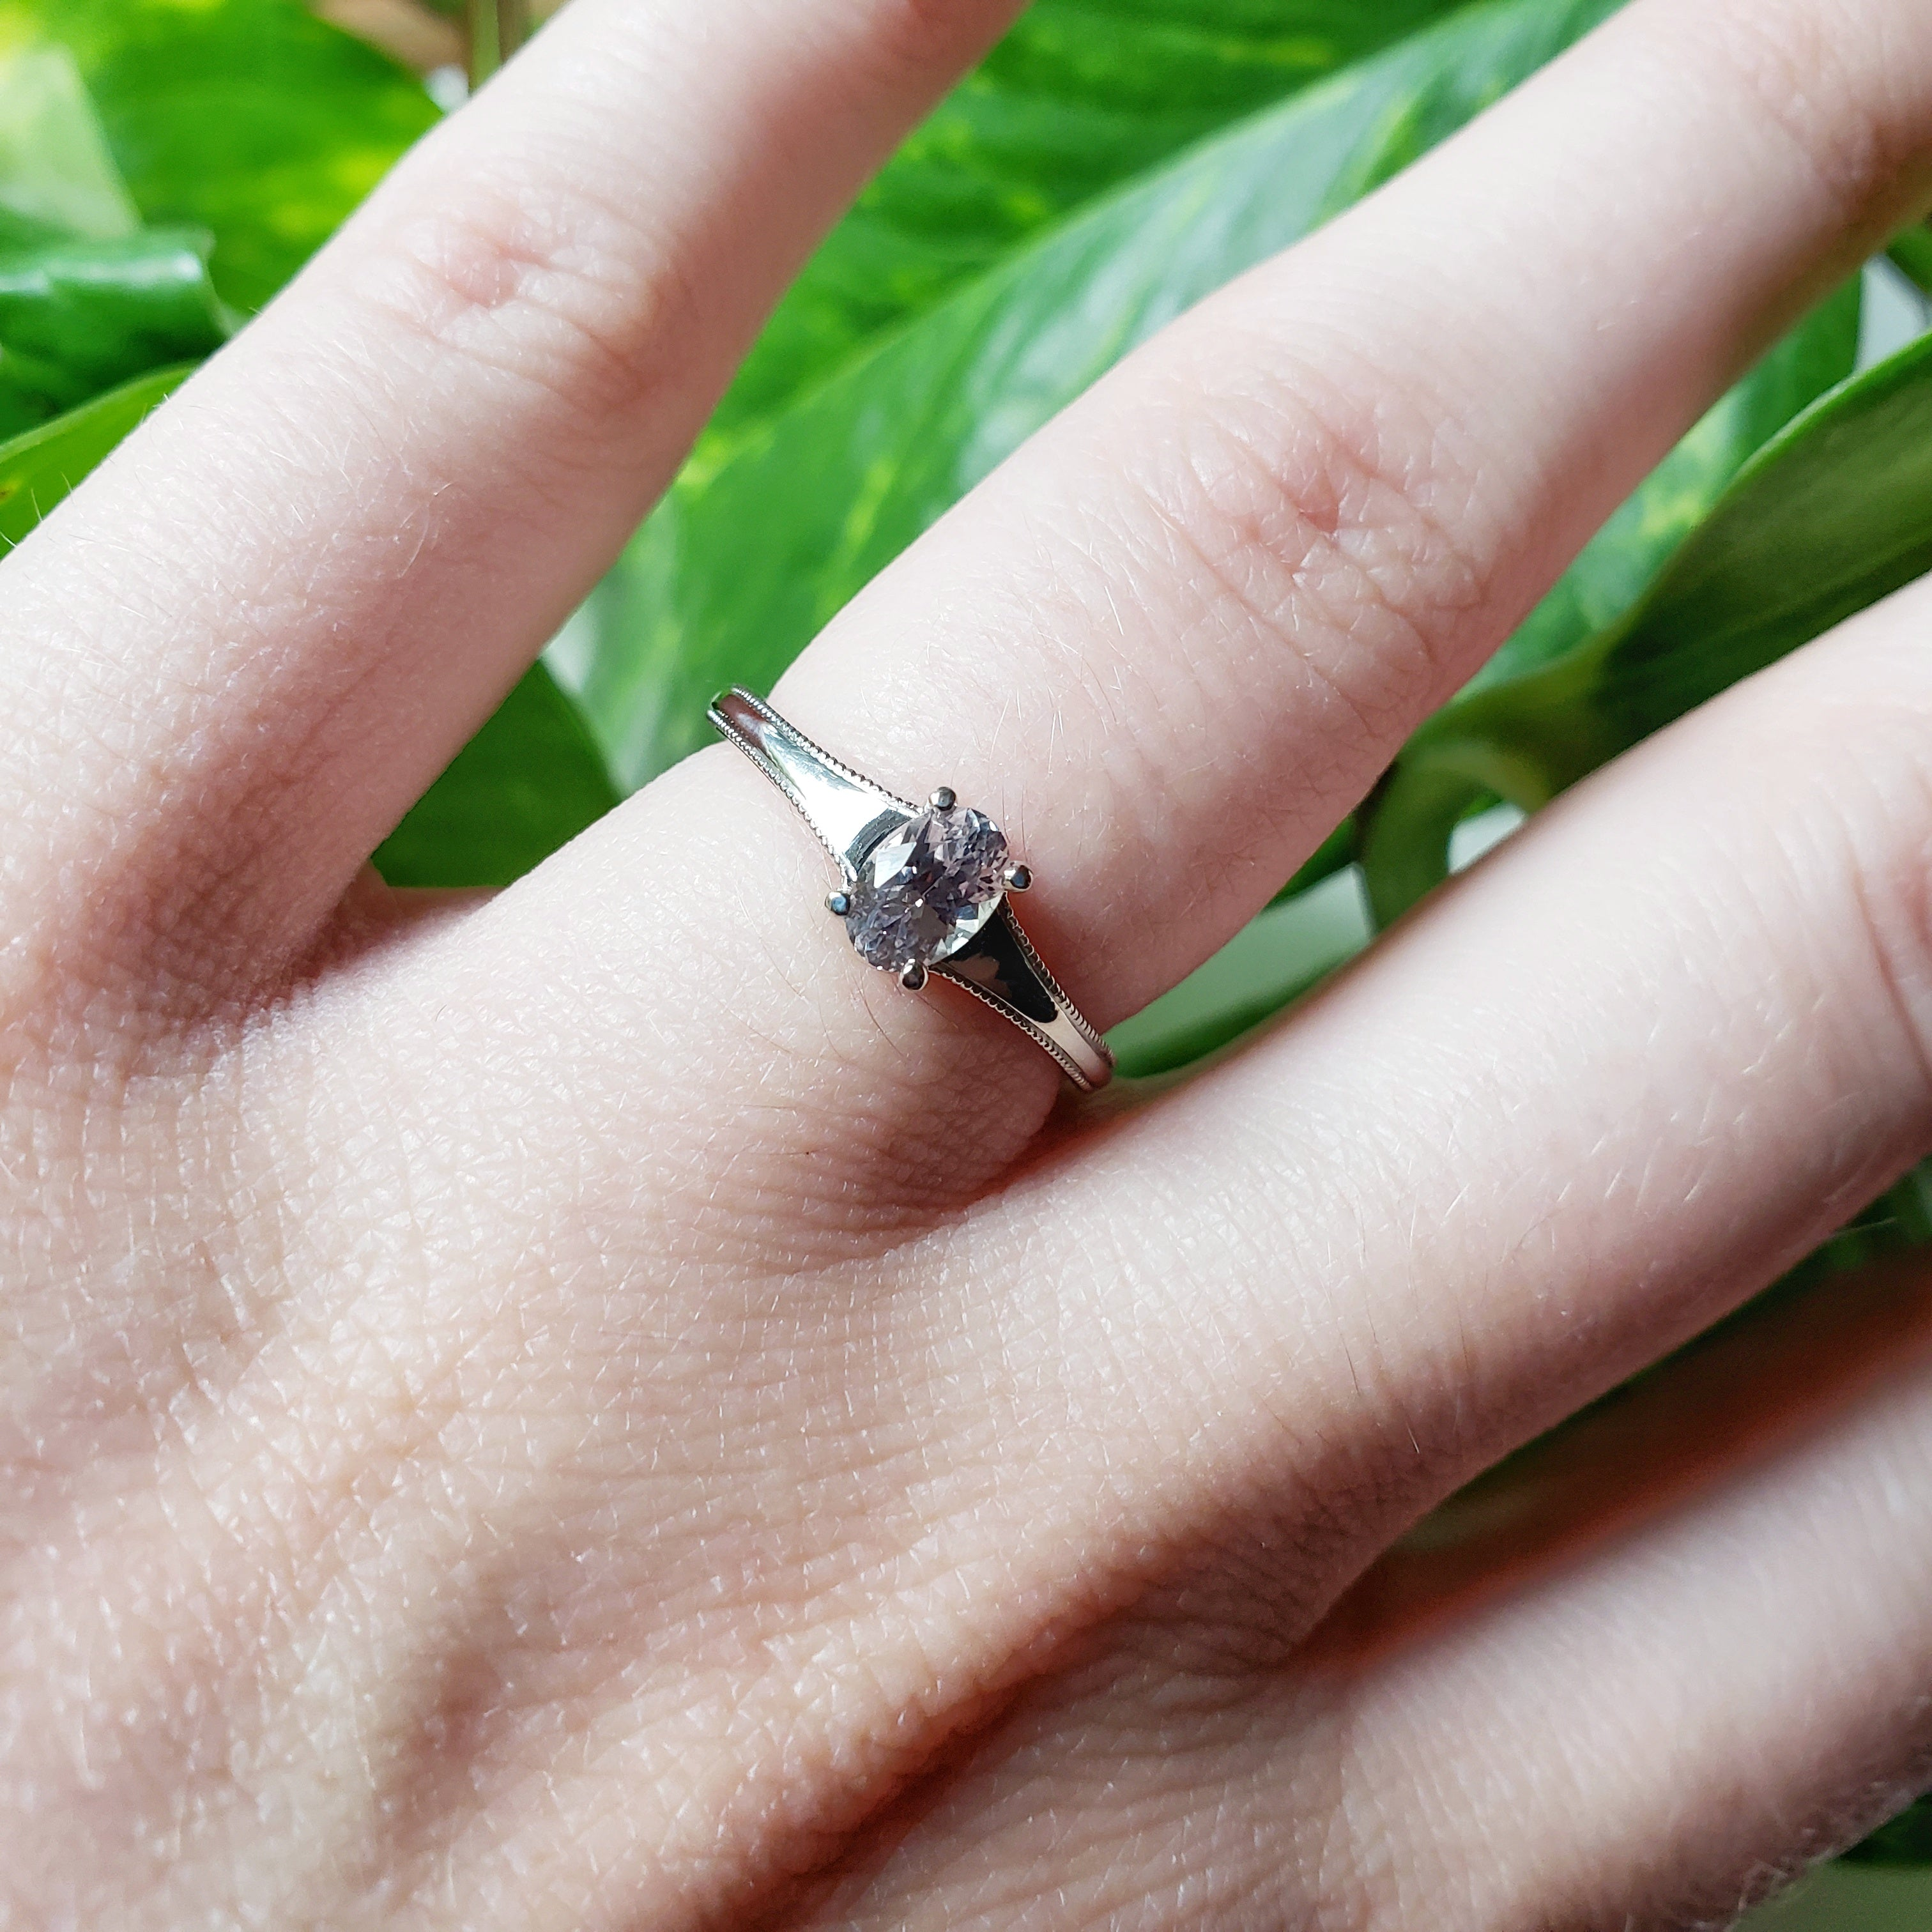 14kt white gold Brooke Montana Sapphire engagement solitaire ring grey smokey purple oval sapphire millgrain handcrafted era design vancouver